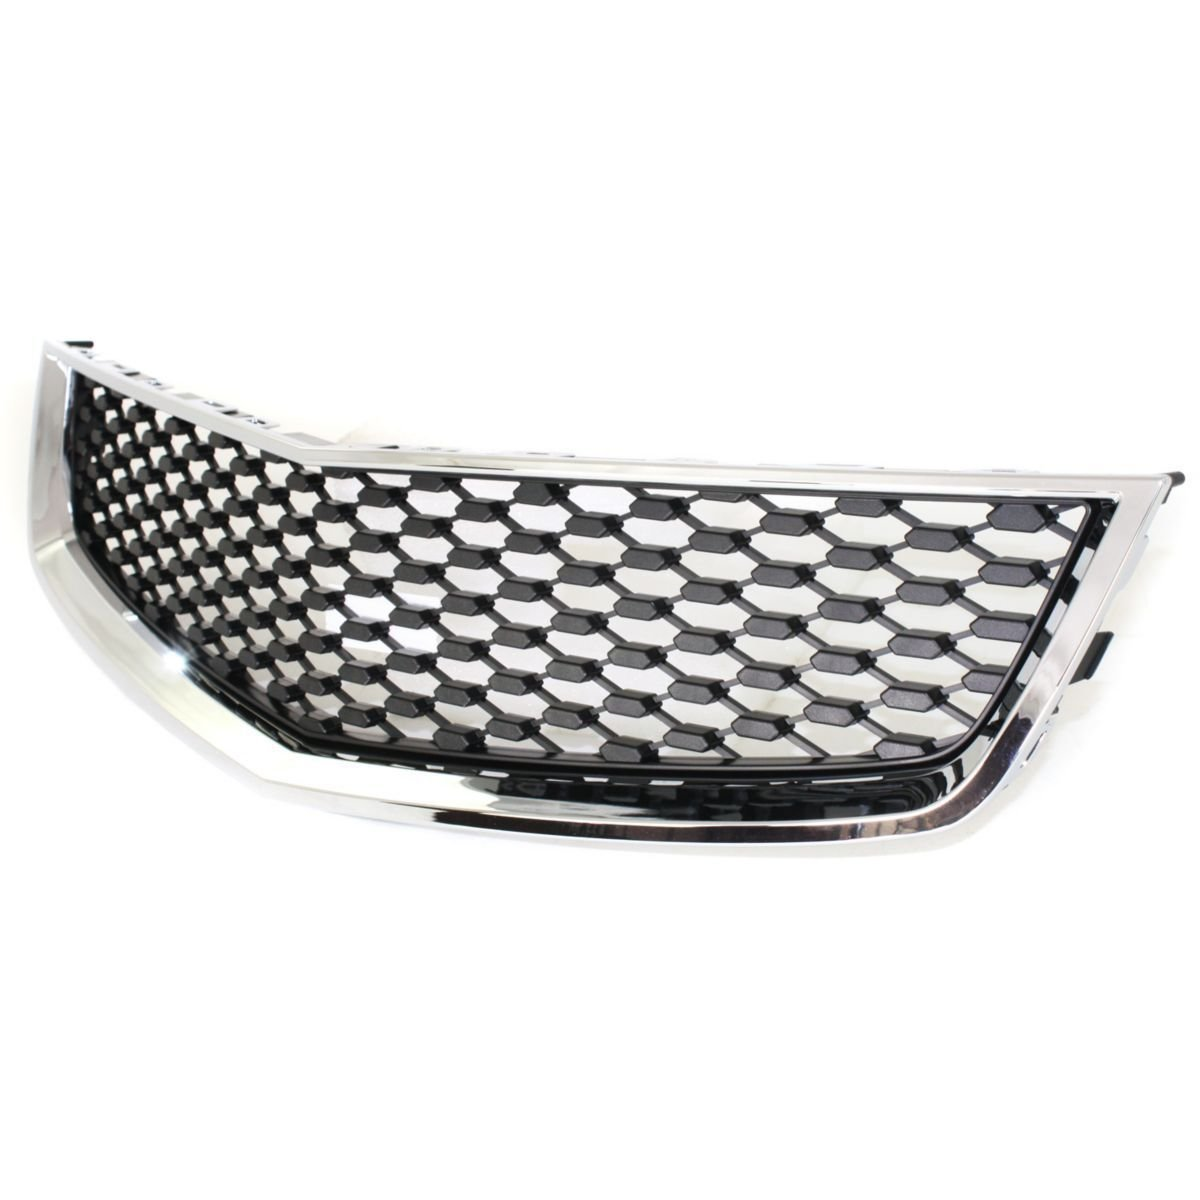 Elite7 Front Lower Grille CHROME Shell w//Black Insert Replacement for 10-15 Chevrolet Equinox GM1200621